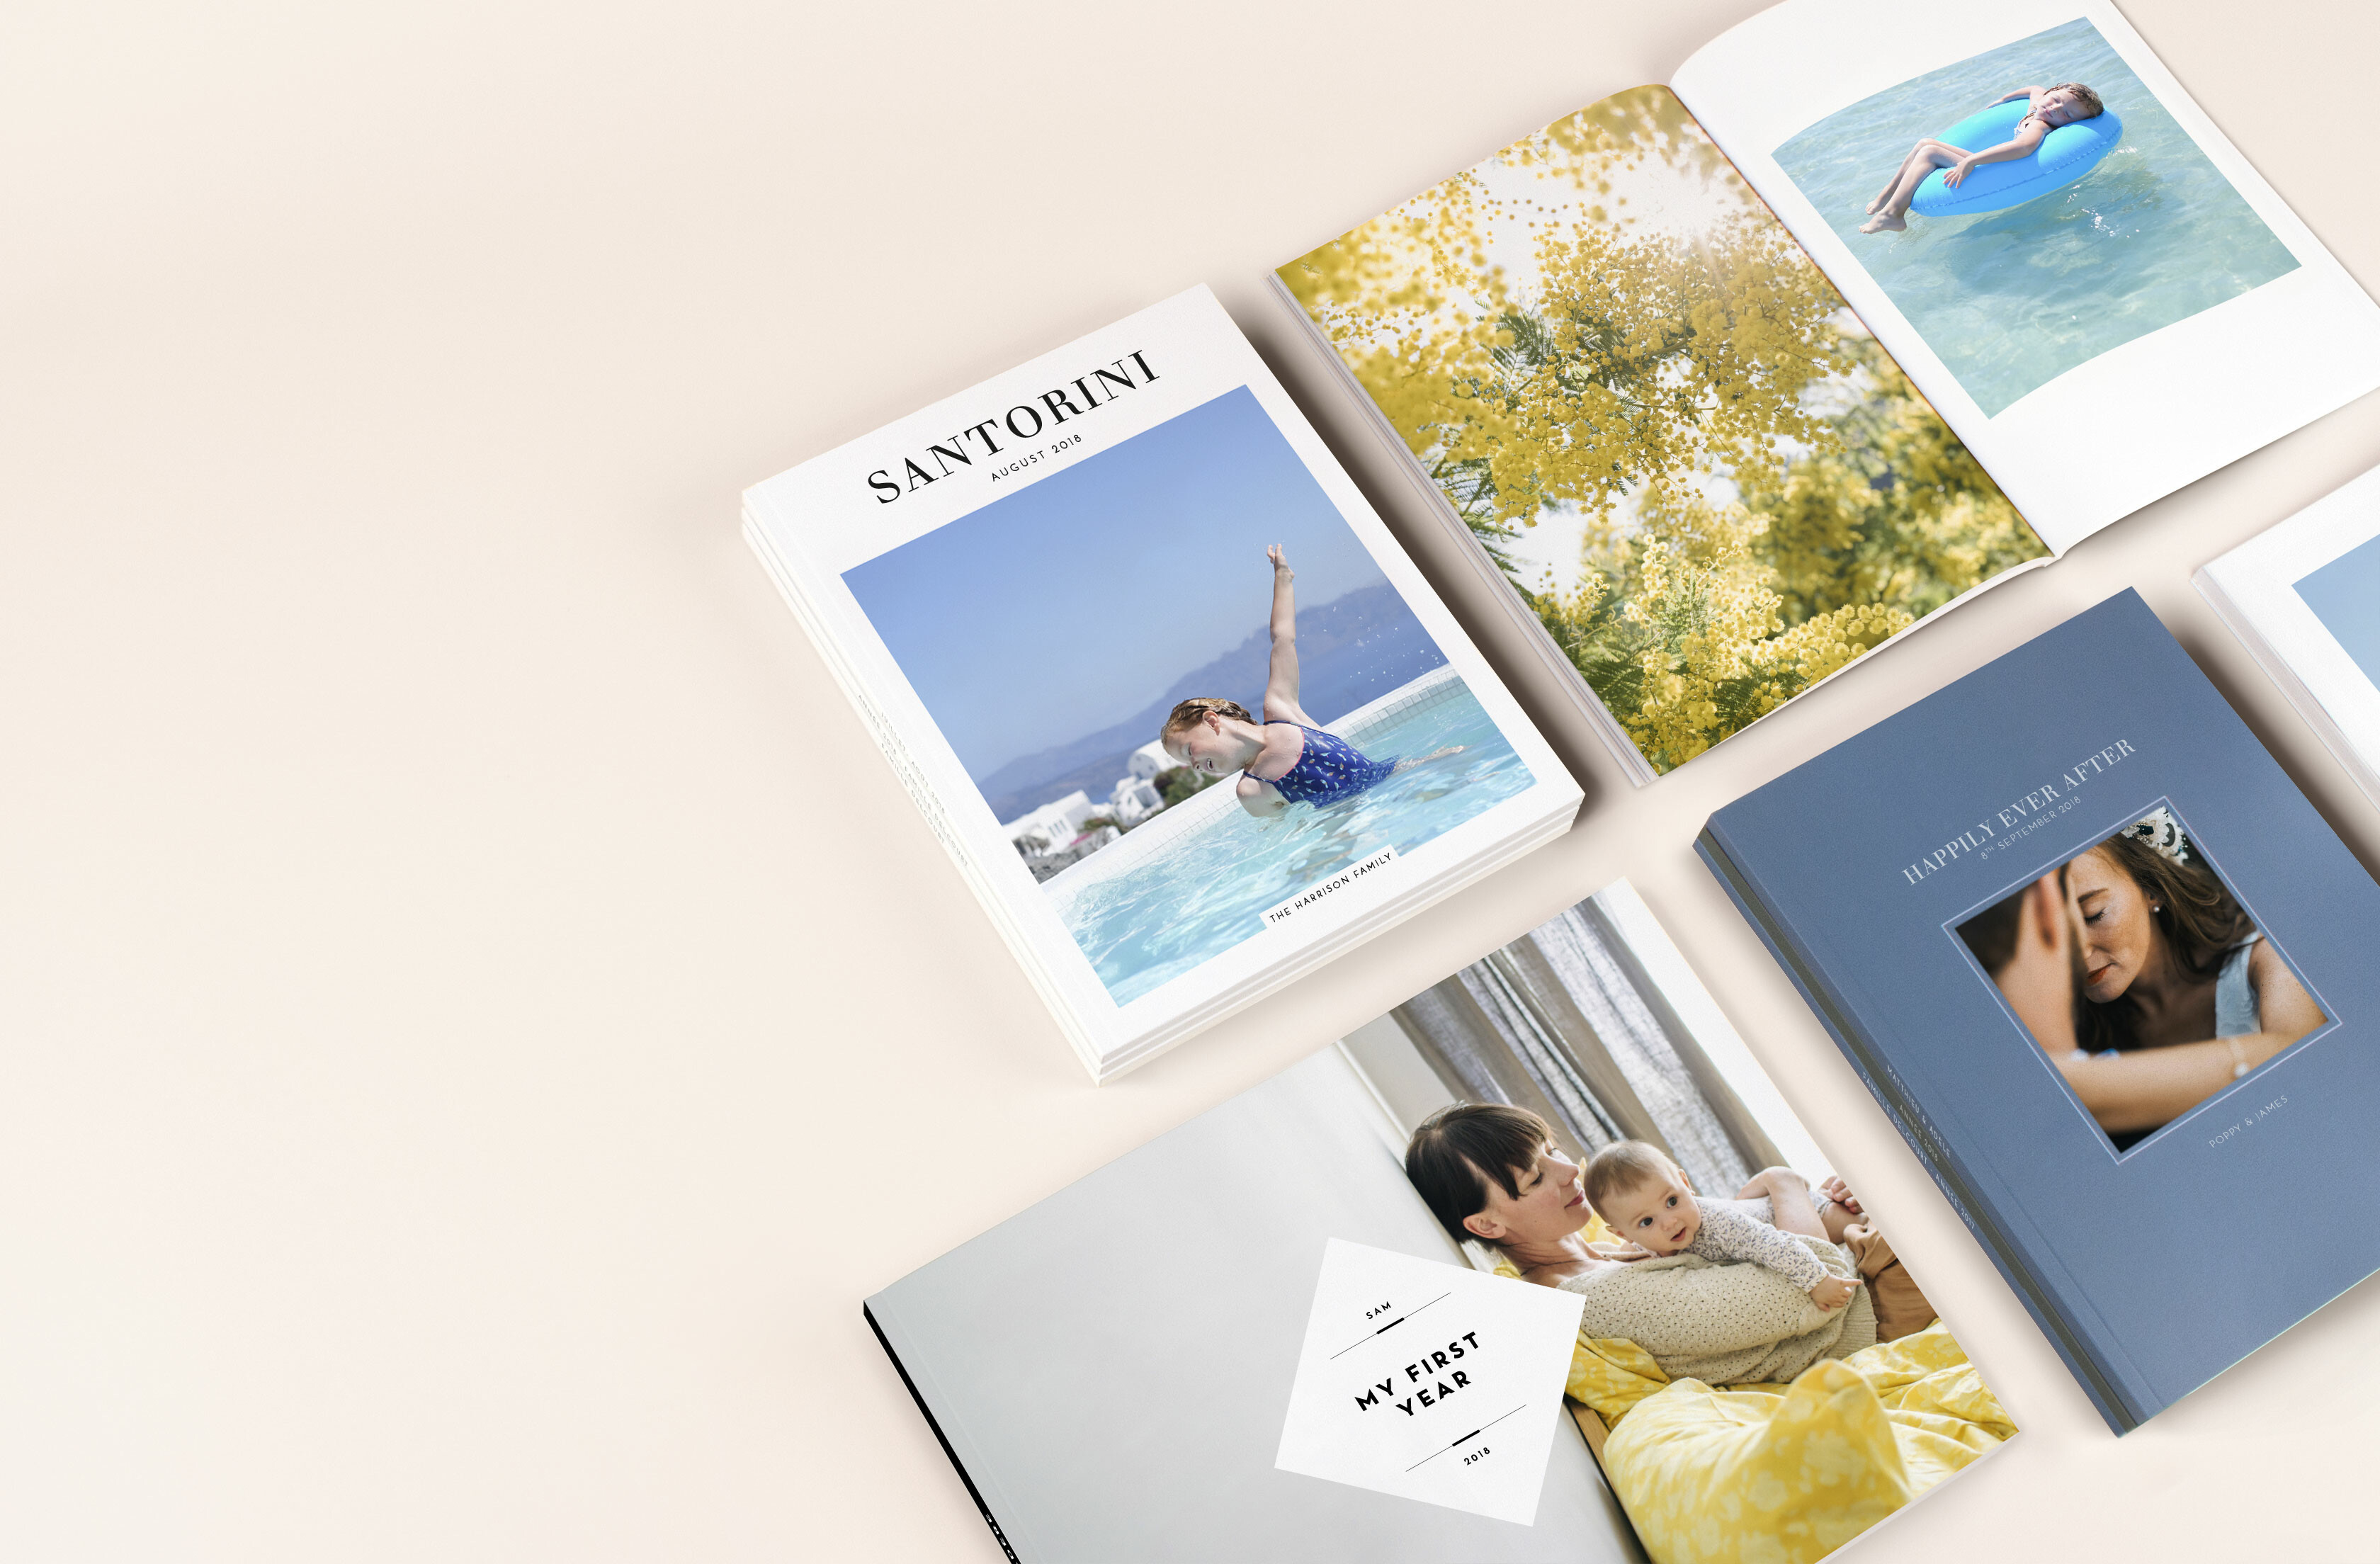 Photo book cover designs